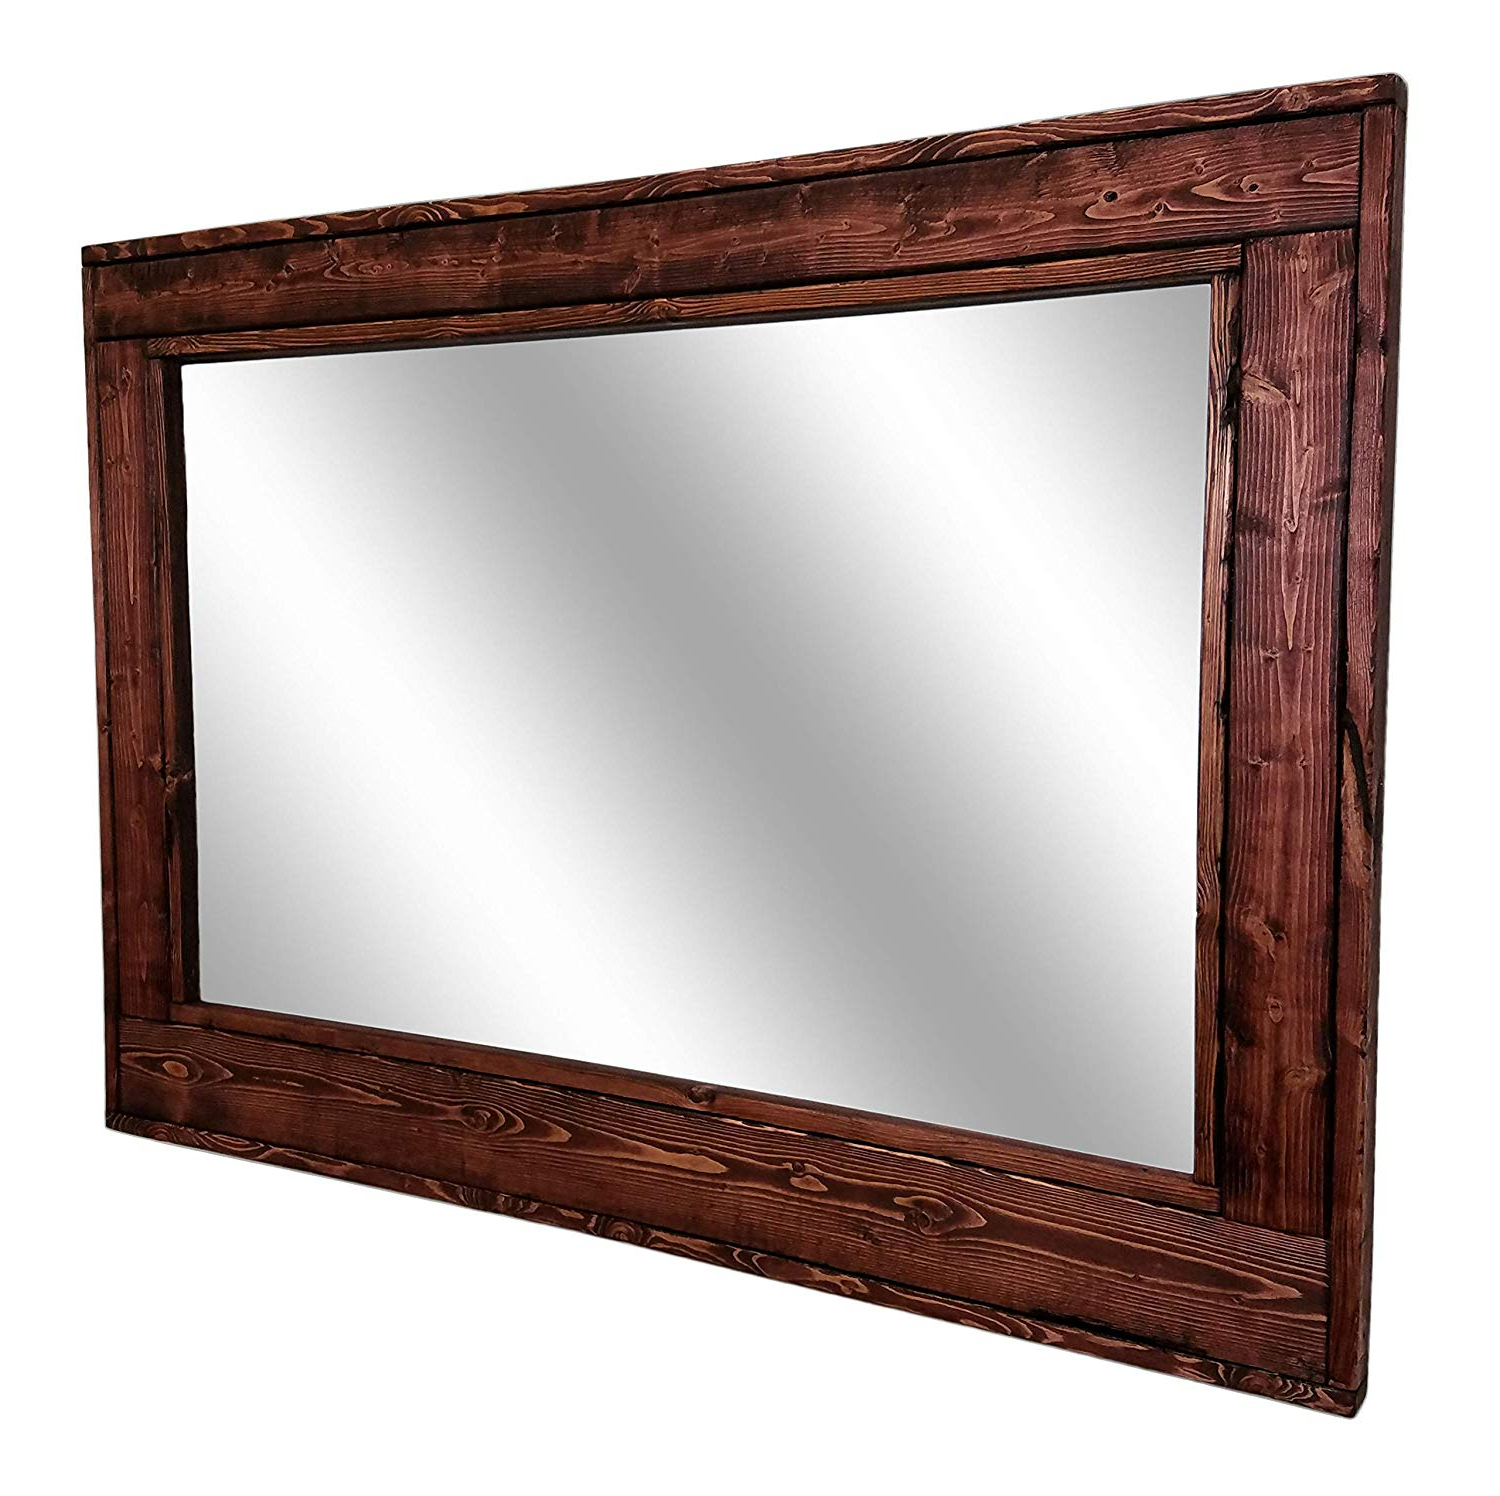 Most Popular Herringbone Reclaimed Wood Framed Mirror, Available In 4 Sizes And 20 Stain  Colors: Shown In Red Mahogany – Rustic Wall Mirror – Large Wall Mirror – Pertaining To Big Wall Mirror Decors (View 13 of 20)